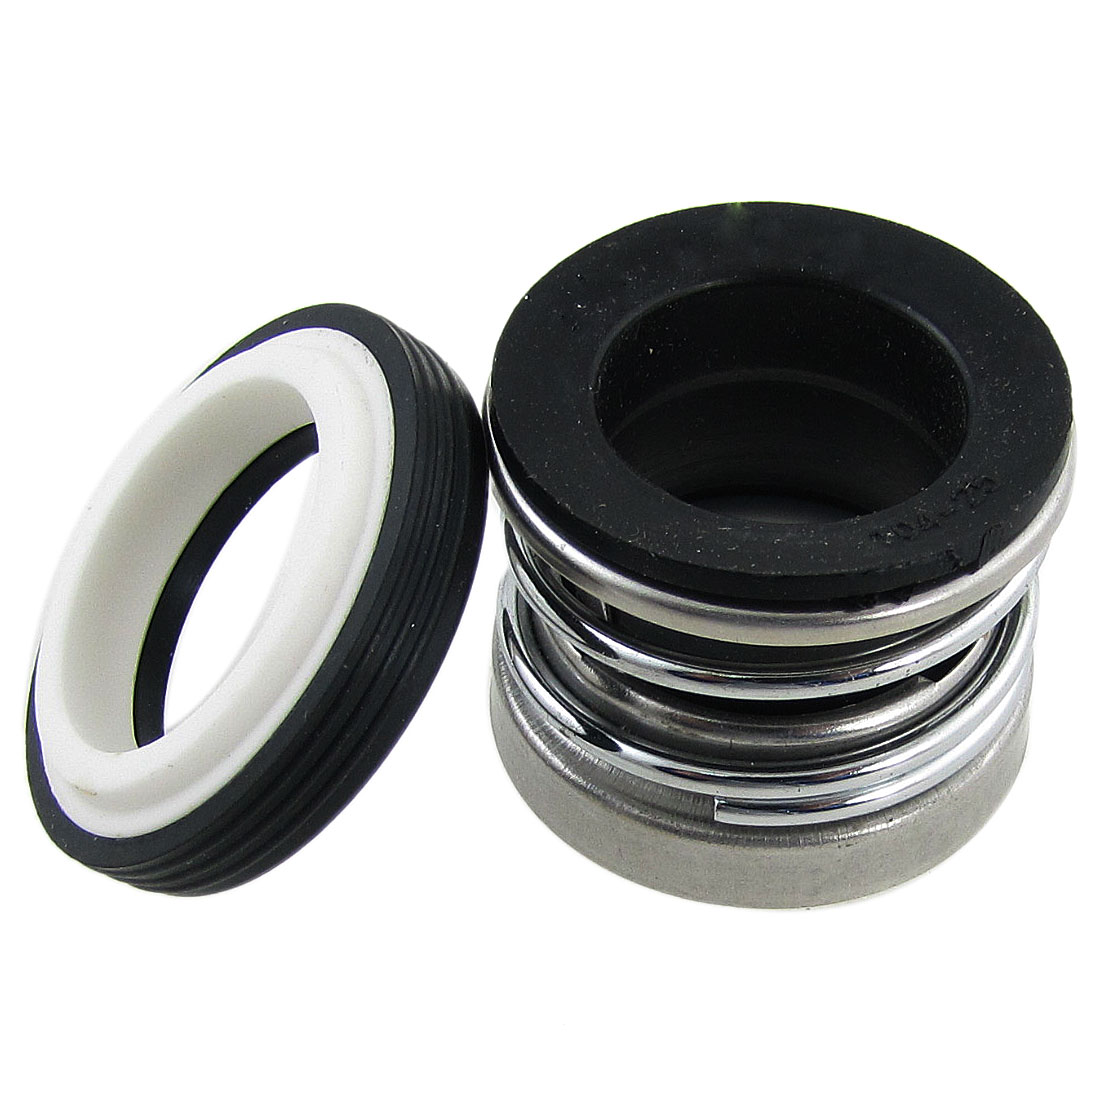 Parts 25mm Dia Shaft Bellows Mechanical Seal for Water Pump